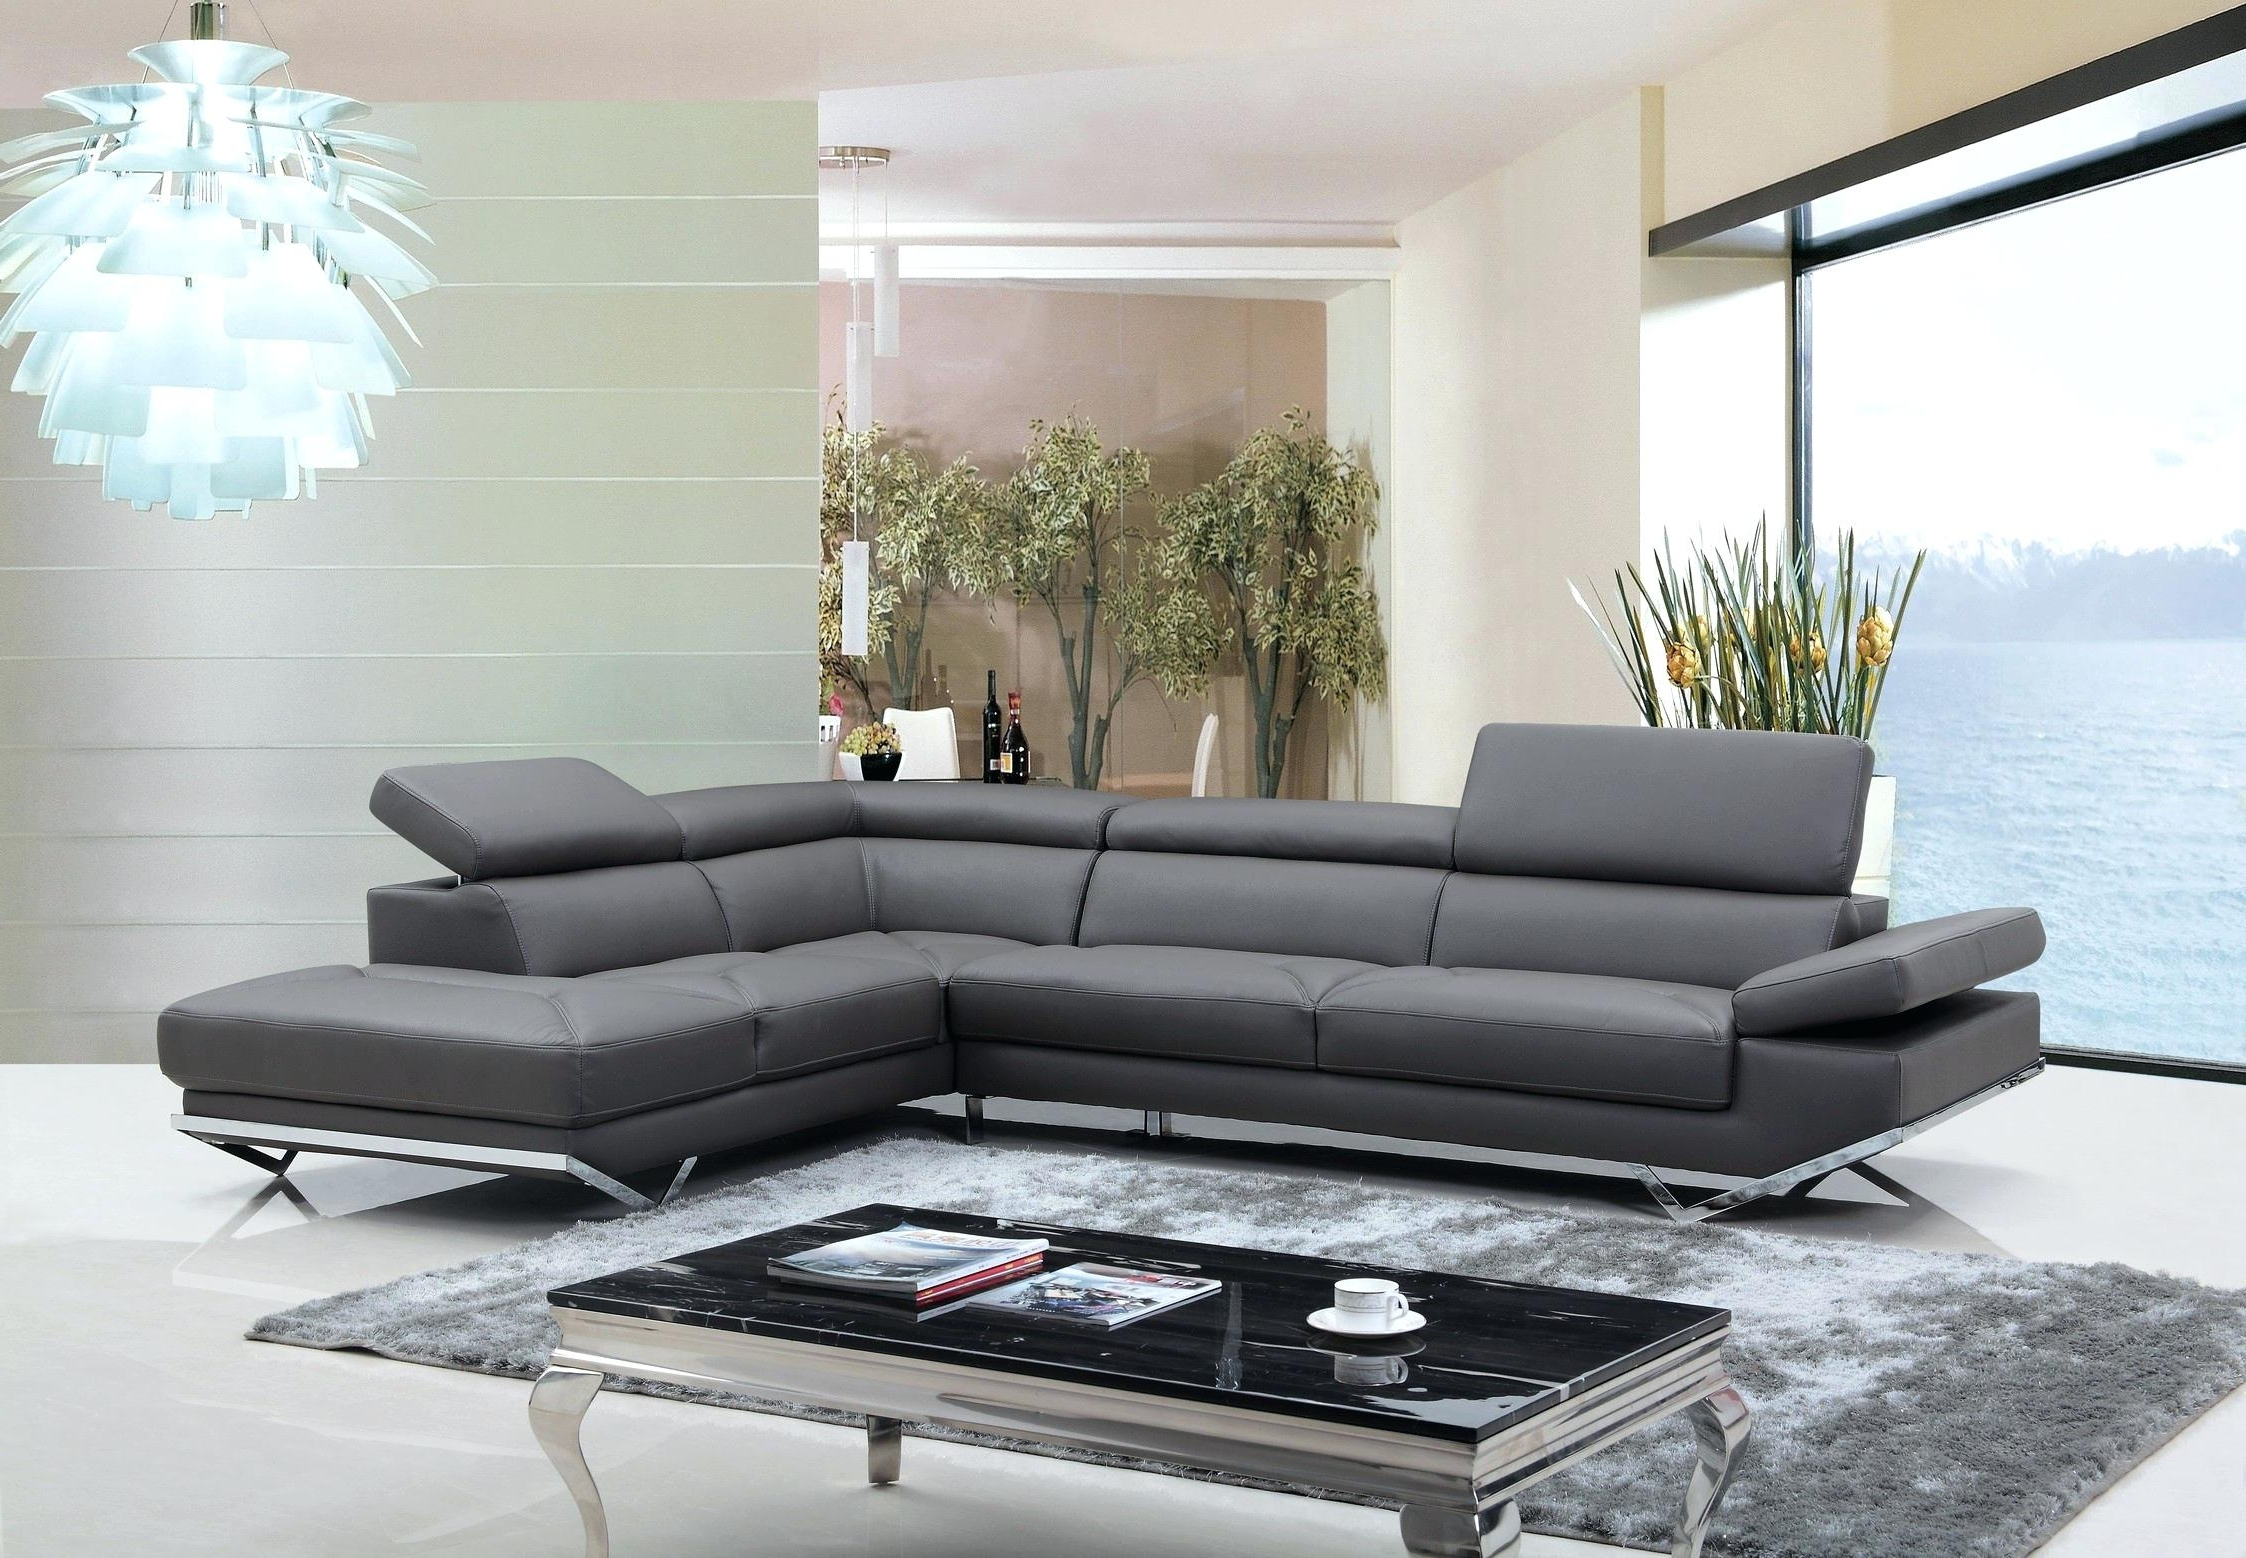 Grey Sectional Sofa Under 1000 Gray Costco Sectionals For Sale For Favorite Leons Sectional Sofas (View 15 of 15)